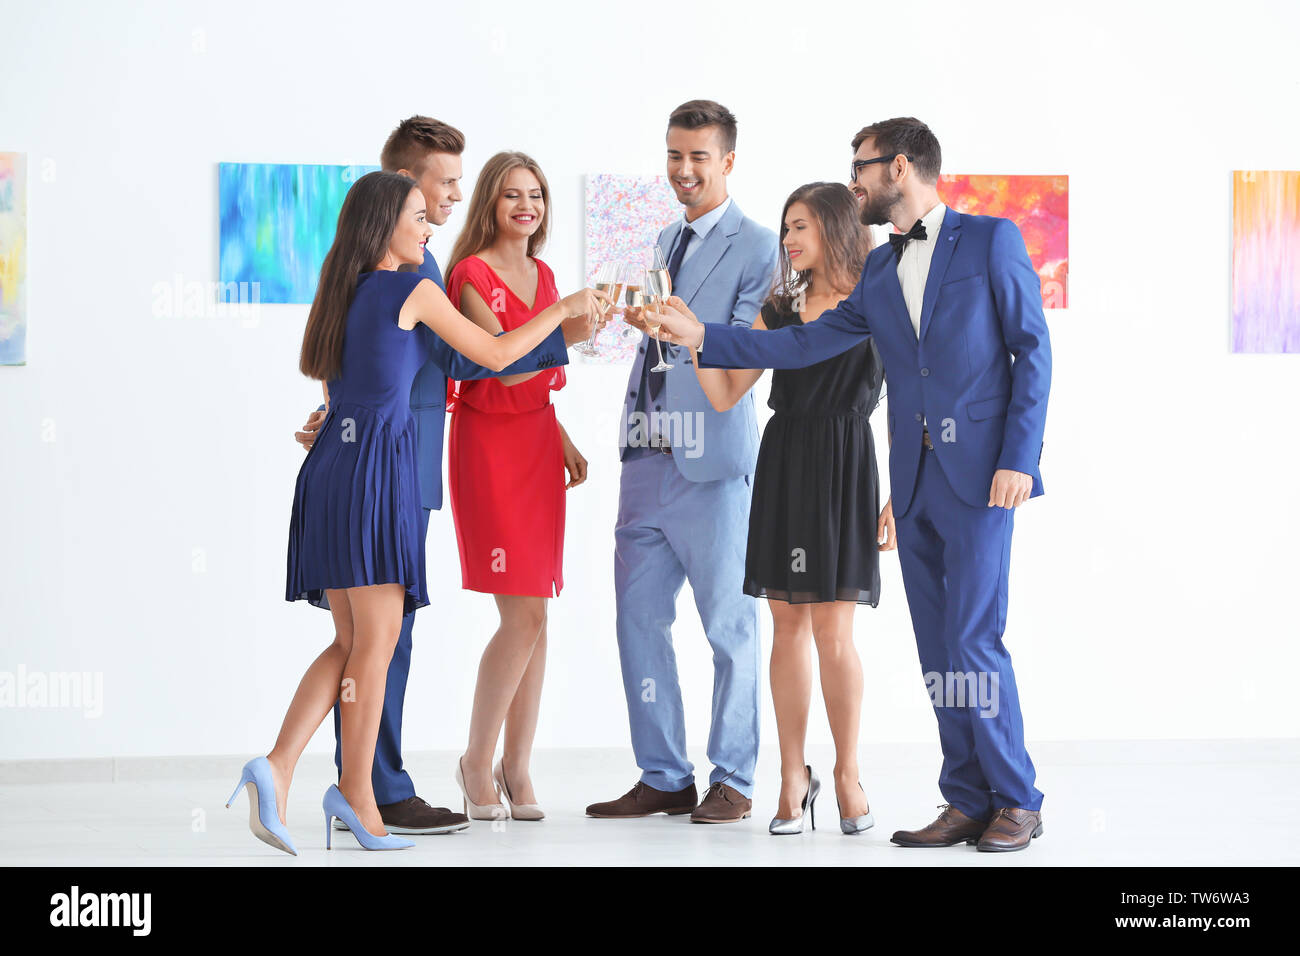 Group of people in formal wear drinking champagne at art gallery exhibition - Stock Image